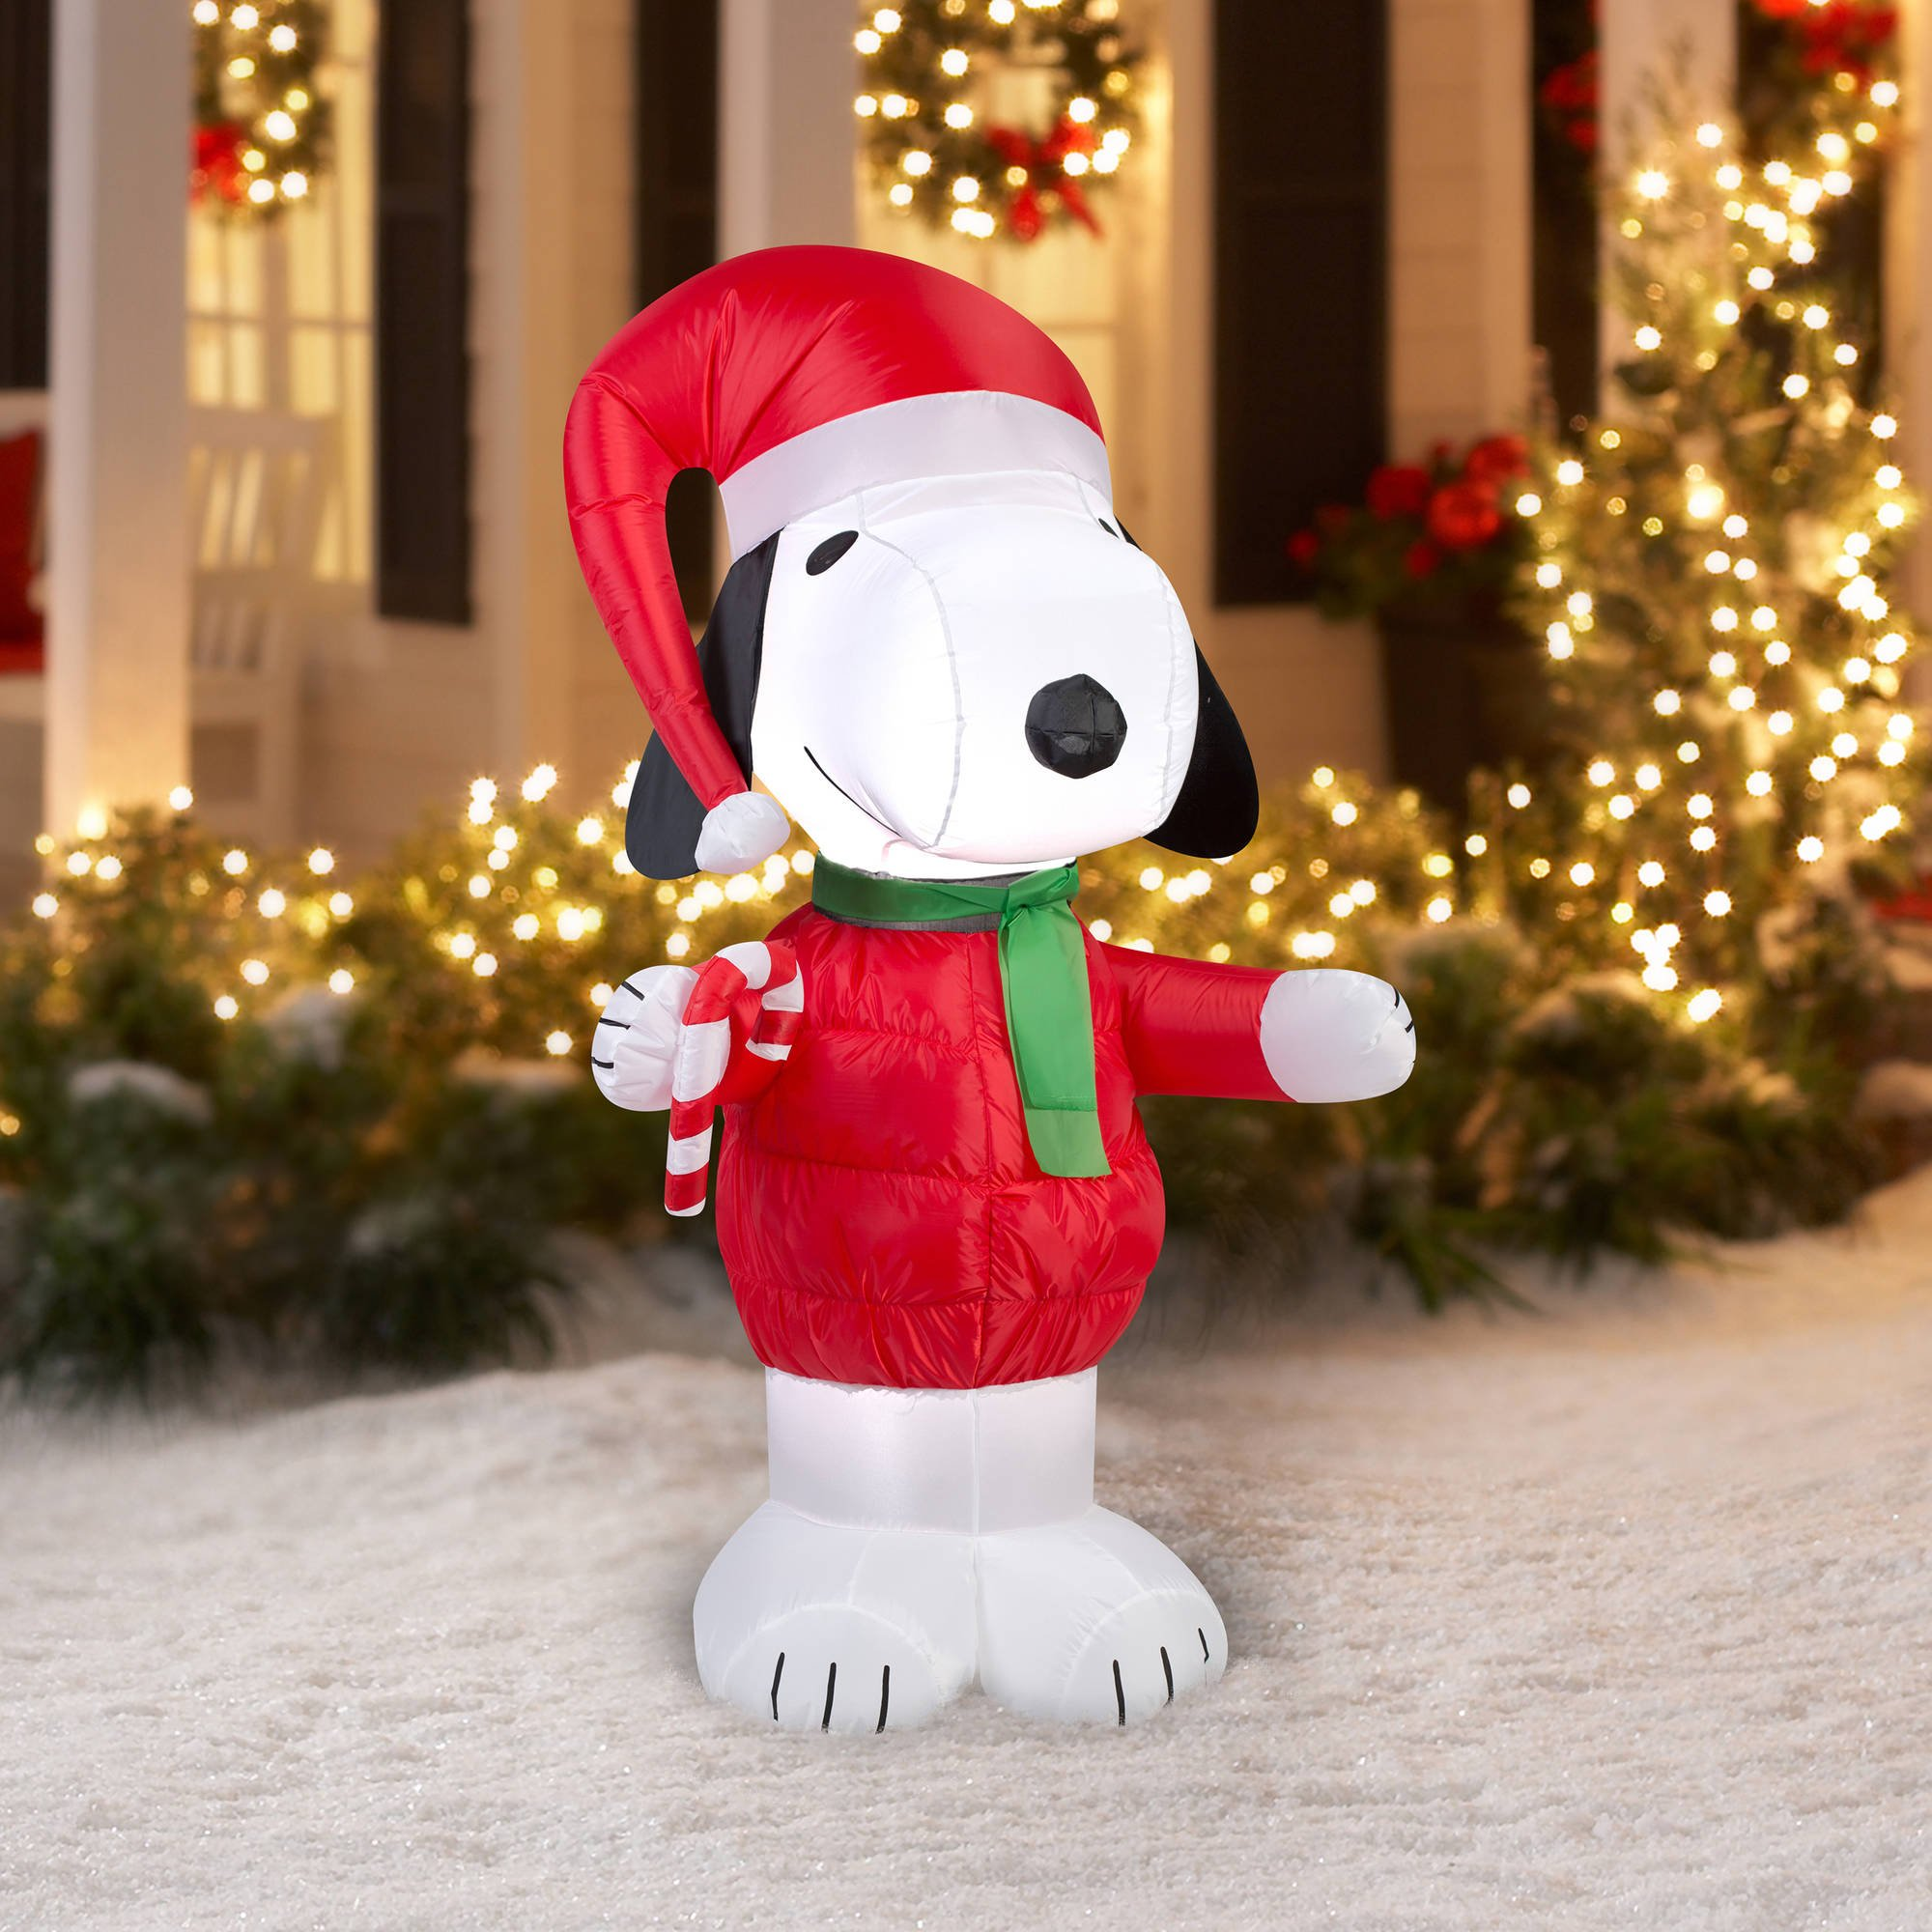 snoopy inflatable christmas yard decorations - Snoopy Christmas Yard Decorations